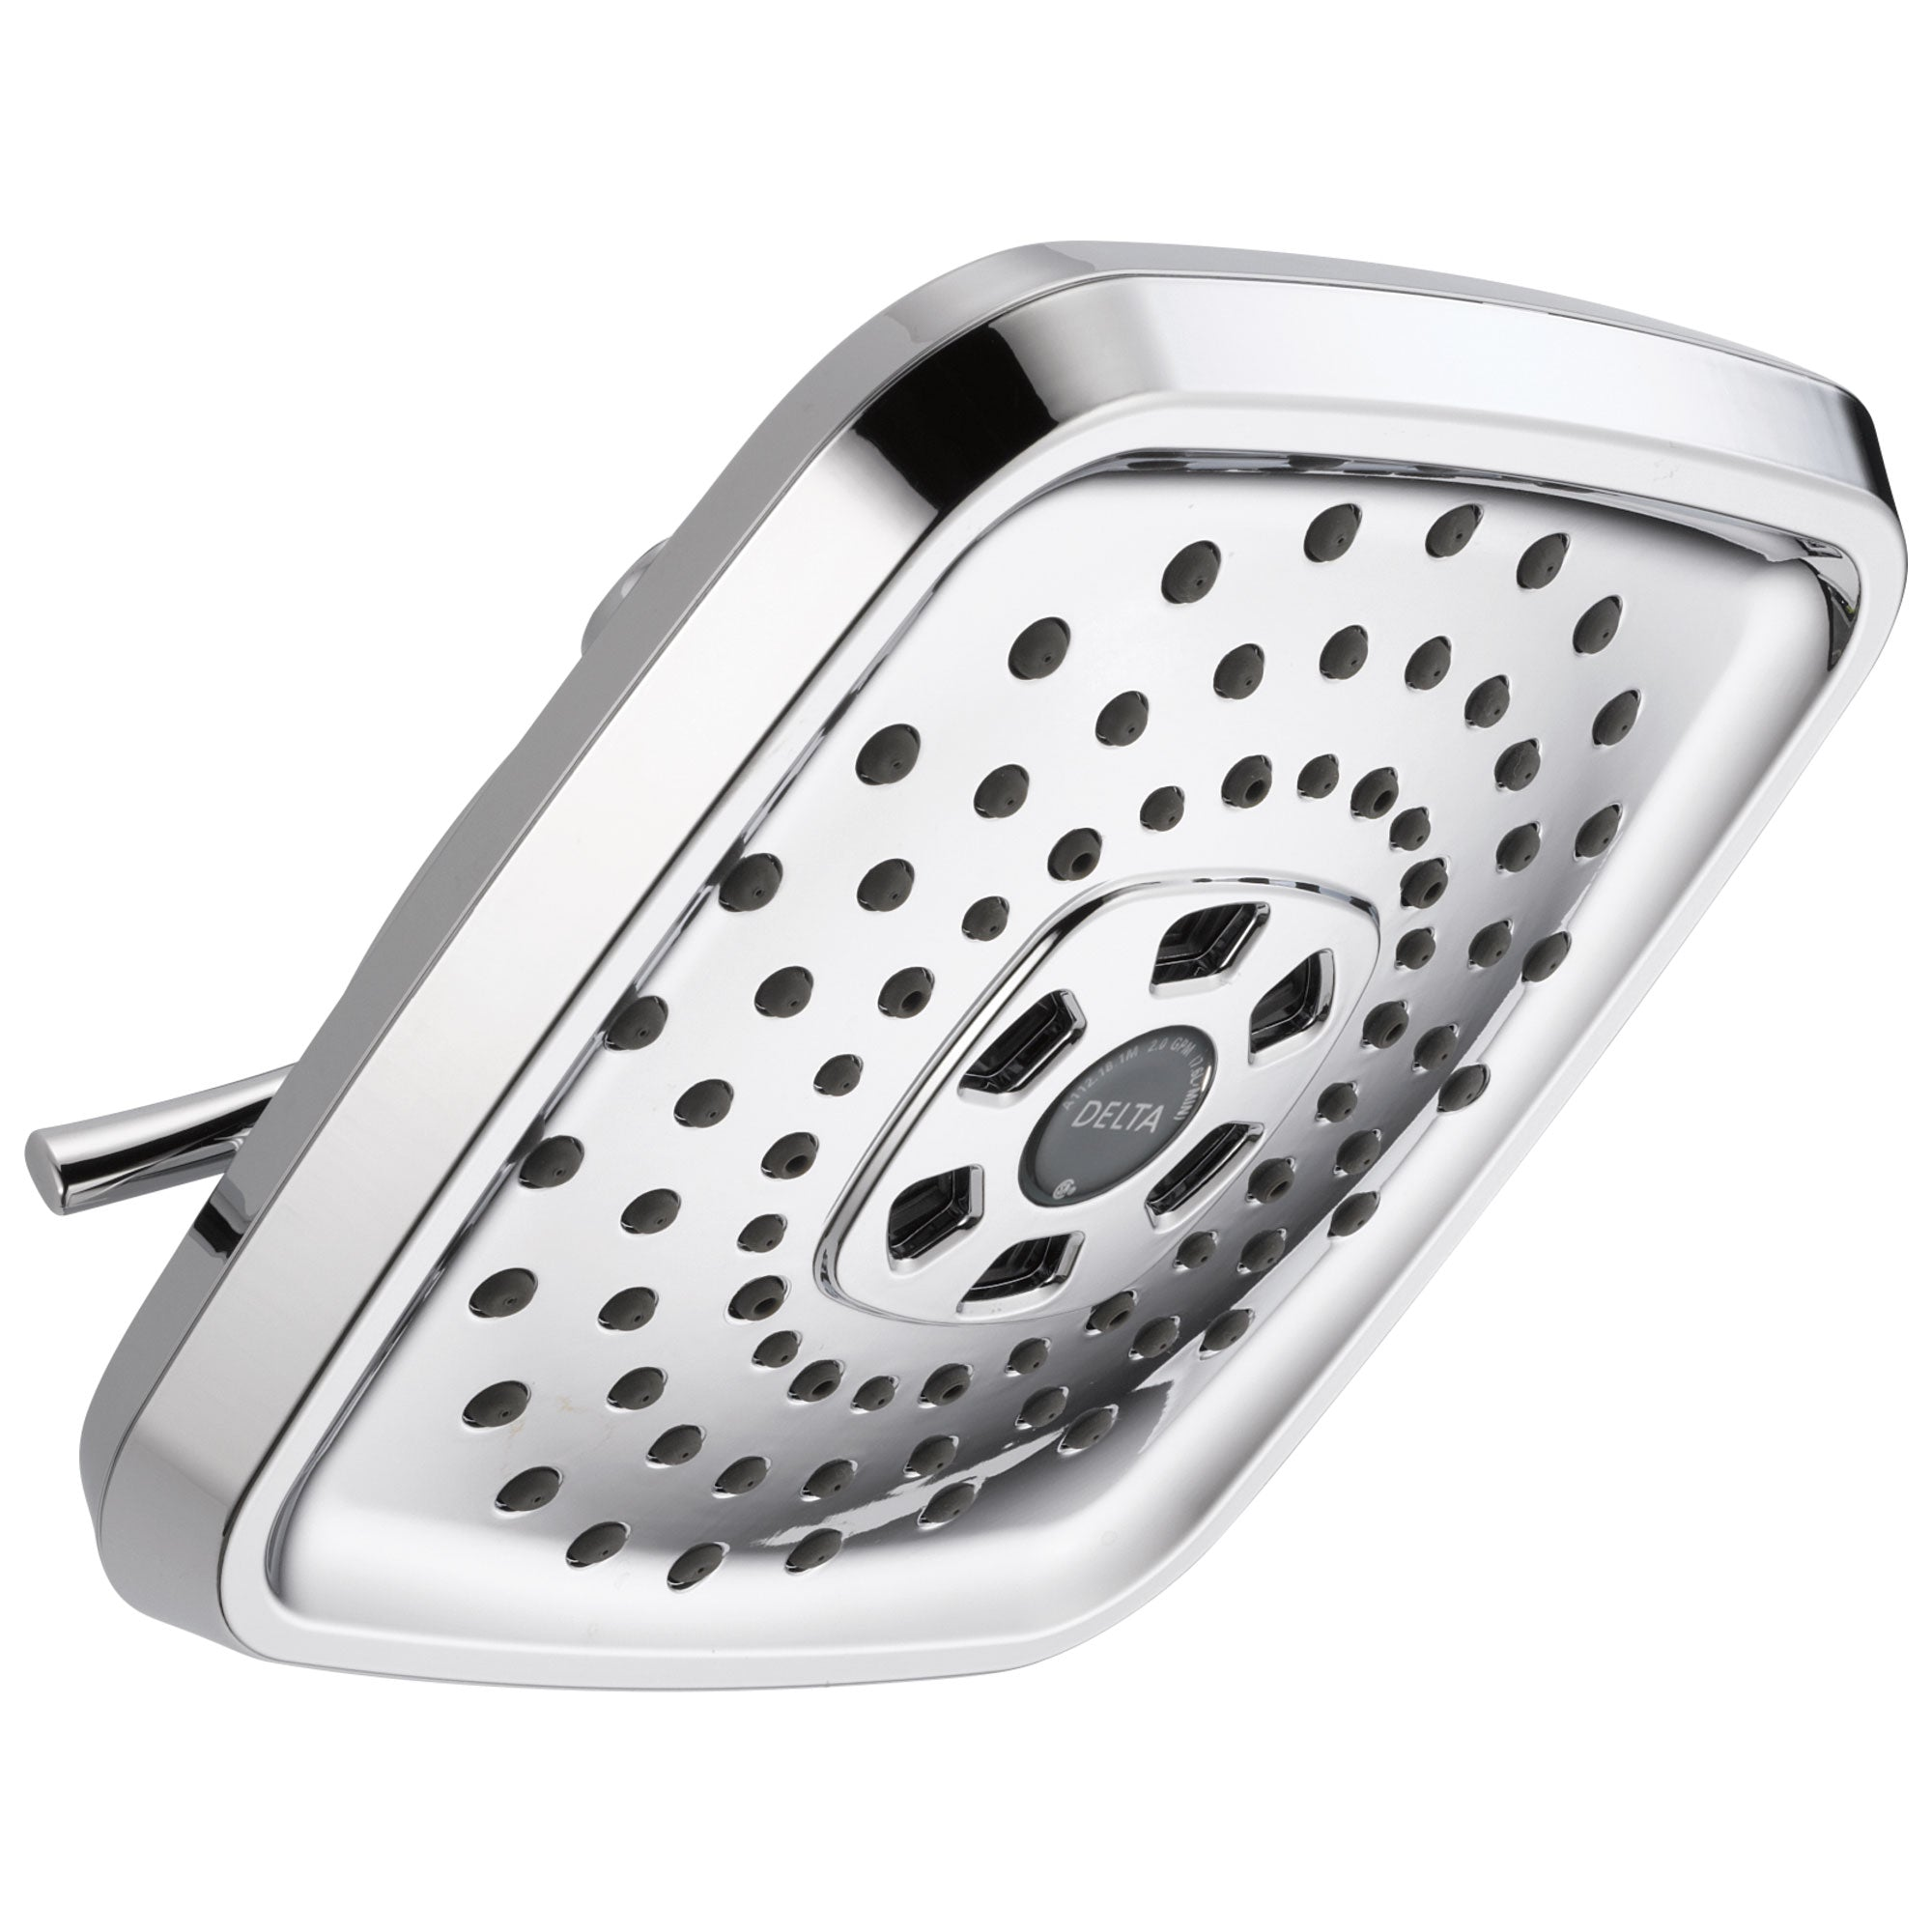 Delta Universal Showering Components Collection Chrome Finish Contemporary Style Shower Head D52690